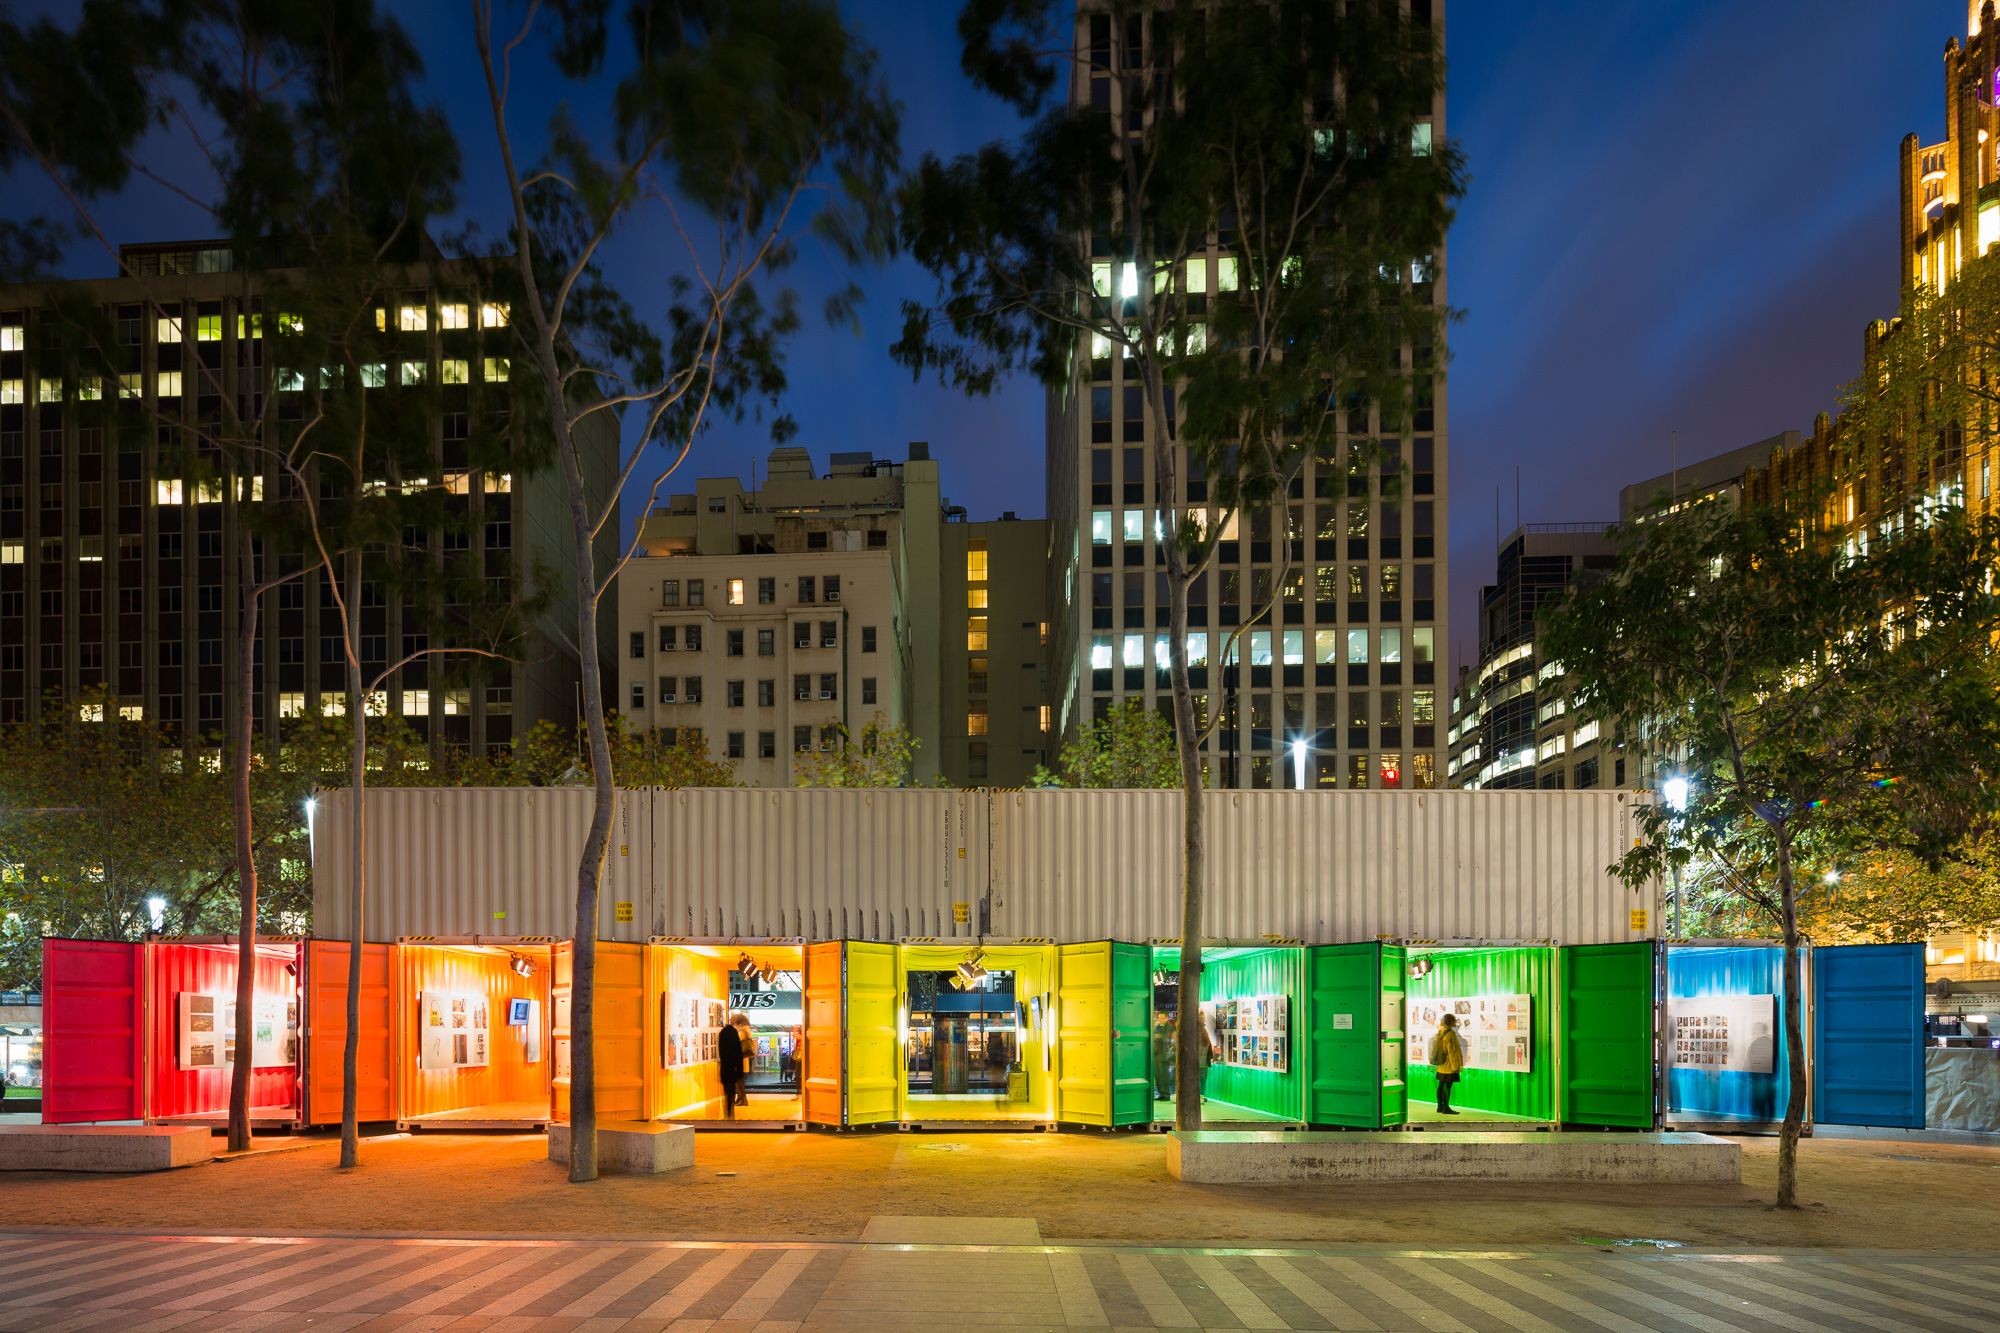 MIDW15_city_square_exhibition_with_coloured_shippling_containers_at_night_photography_by_sarah_anderson